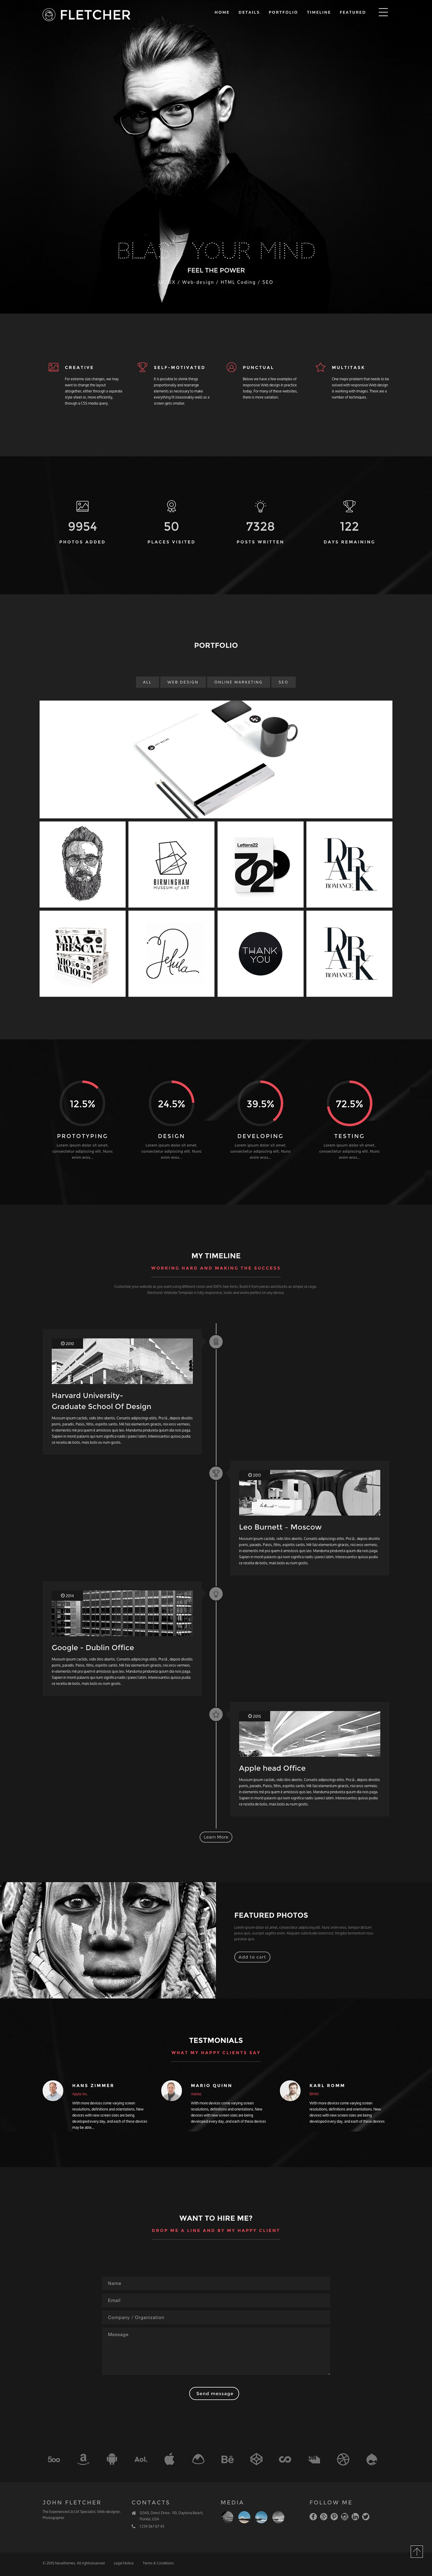 u0026 39 fletcher u0026 39  is a one page html template that aims to provide a portfolio layout for an individual